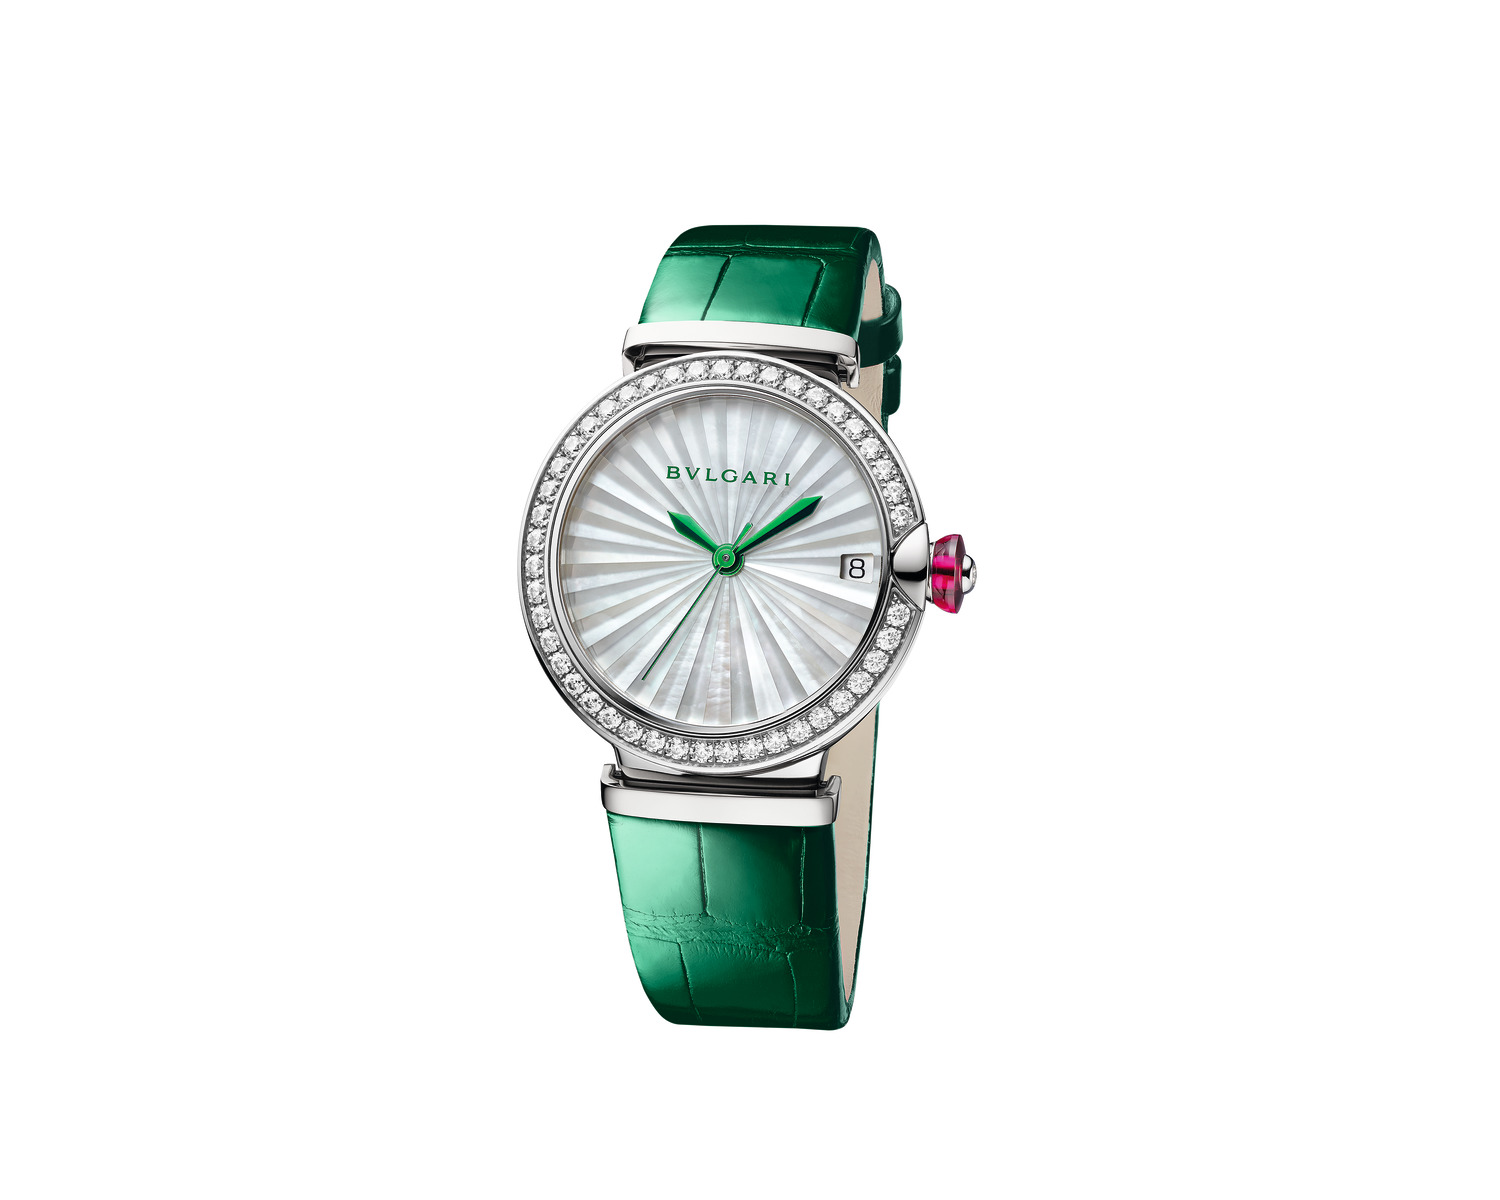 BVLGARI 'LVCEA watch 33mm with stainless steel case set with diamonds